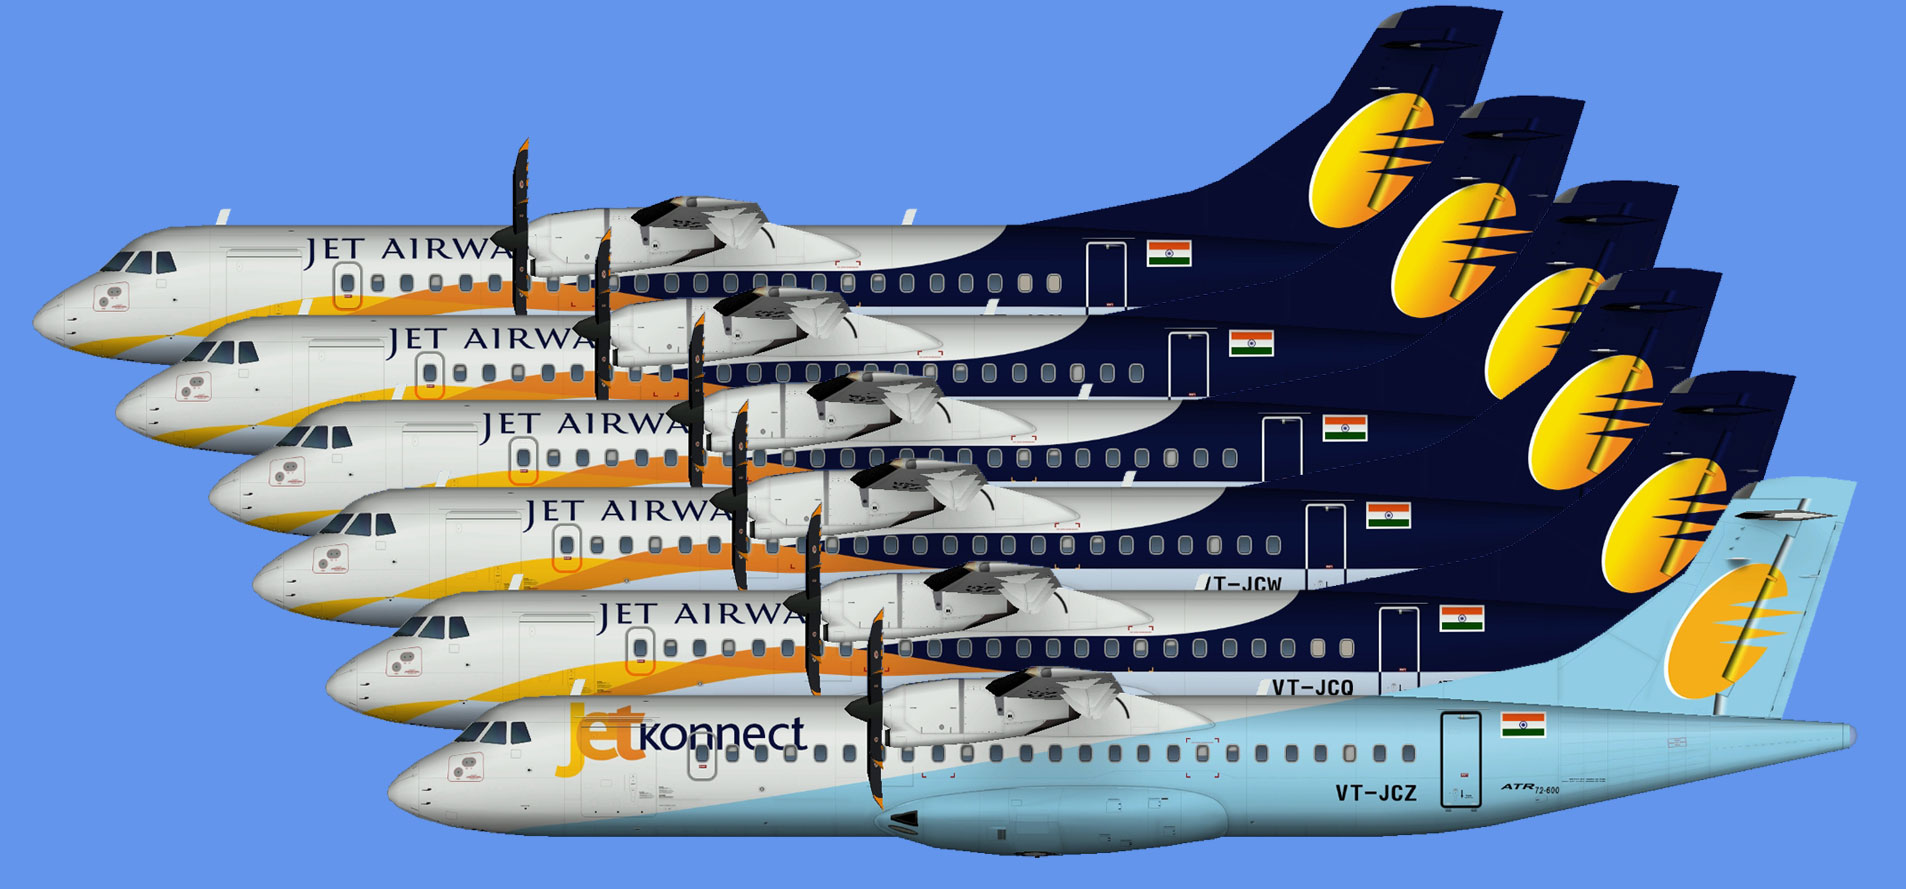 Jet Airways ATR 72